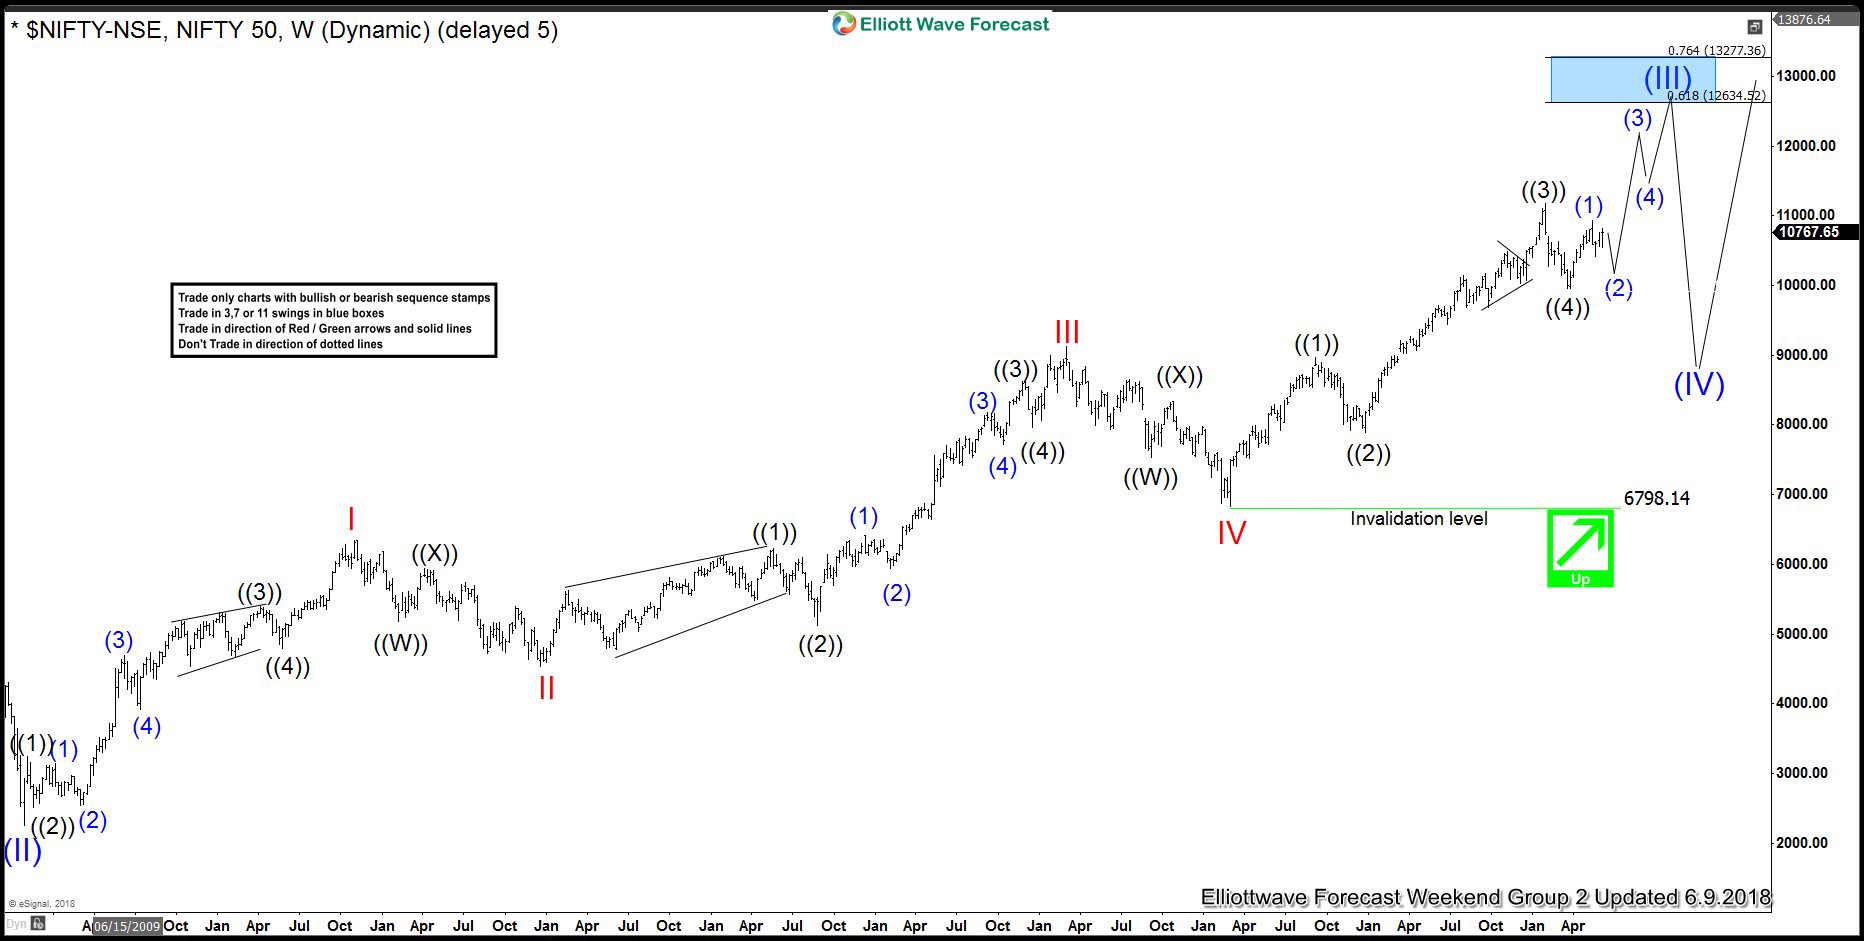 Nifty Elliott Wave View Showing Perfect 5 Waves Advance